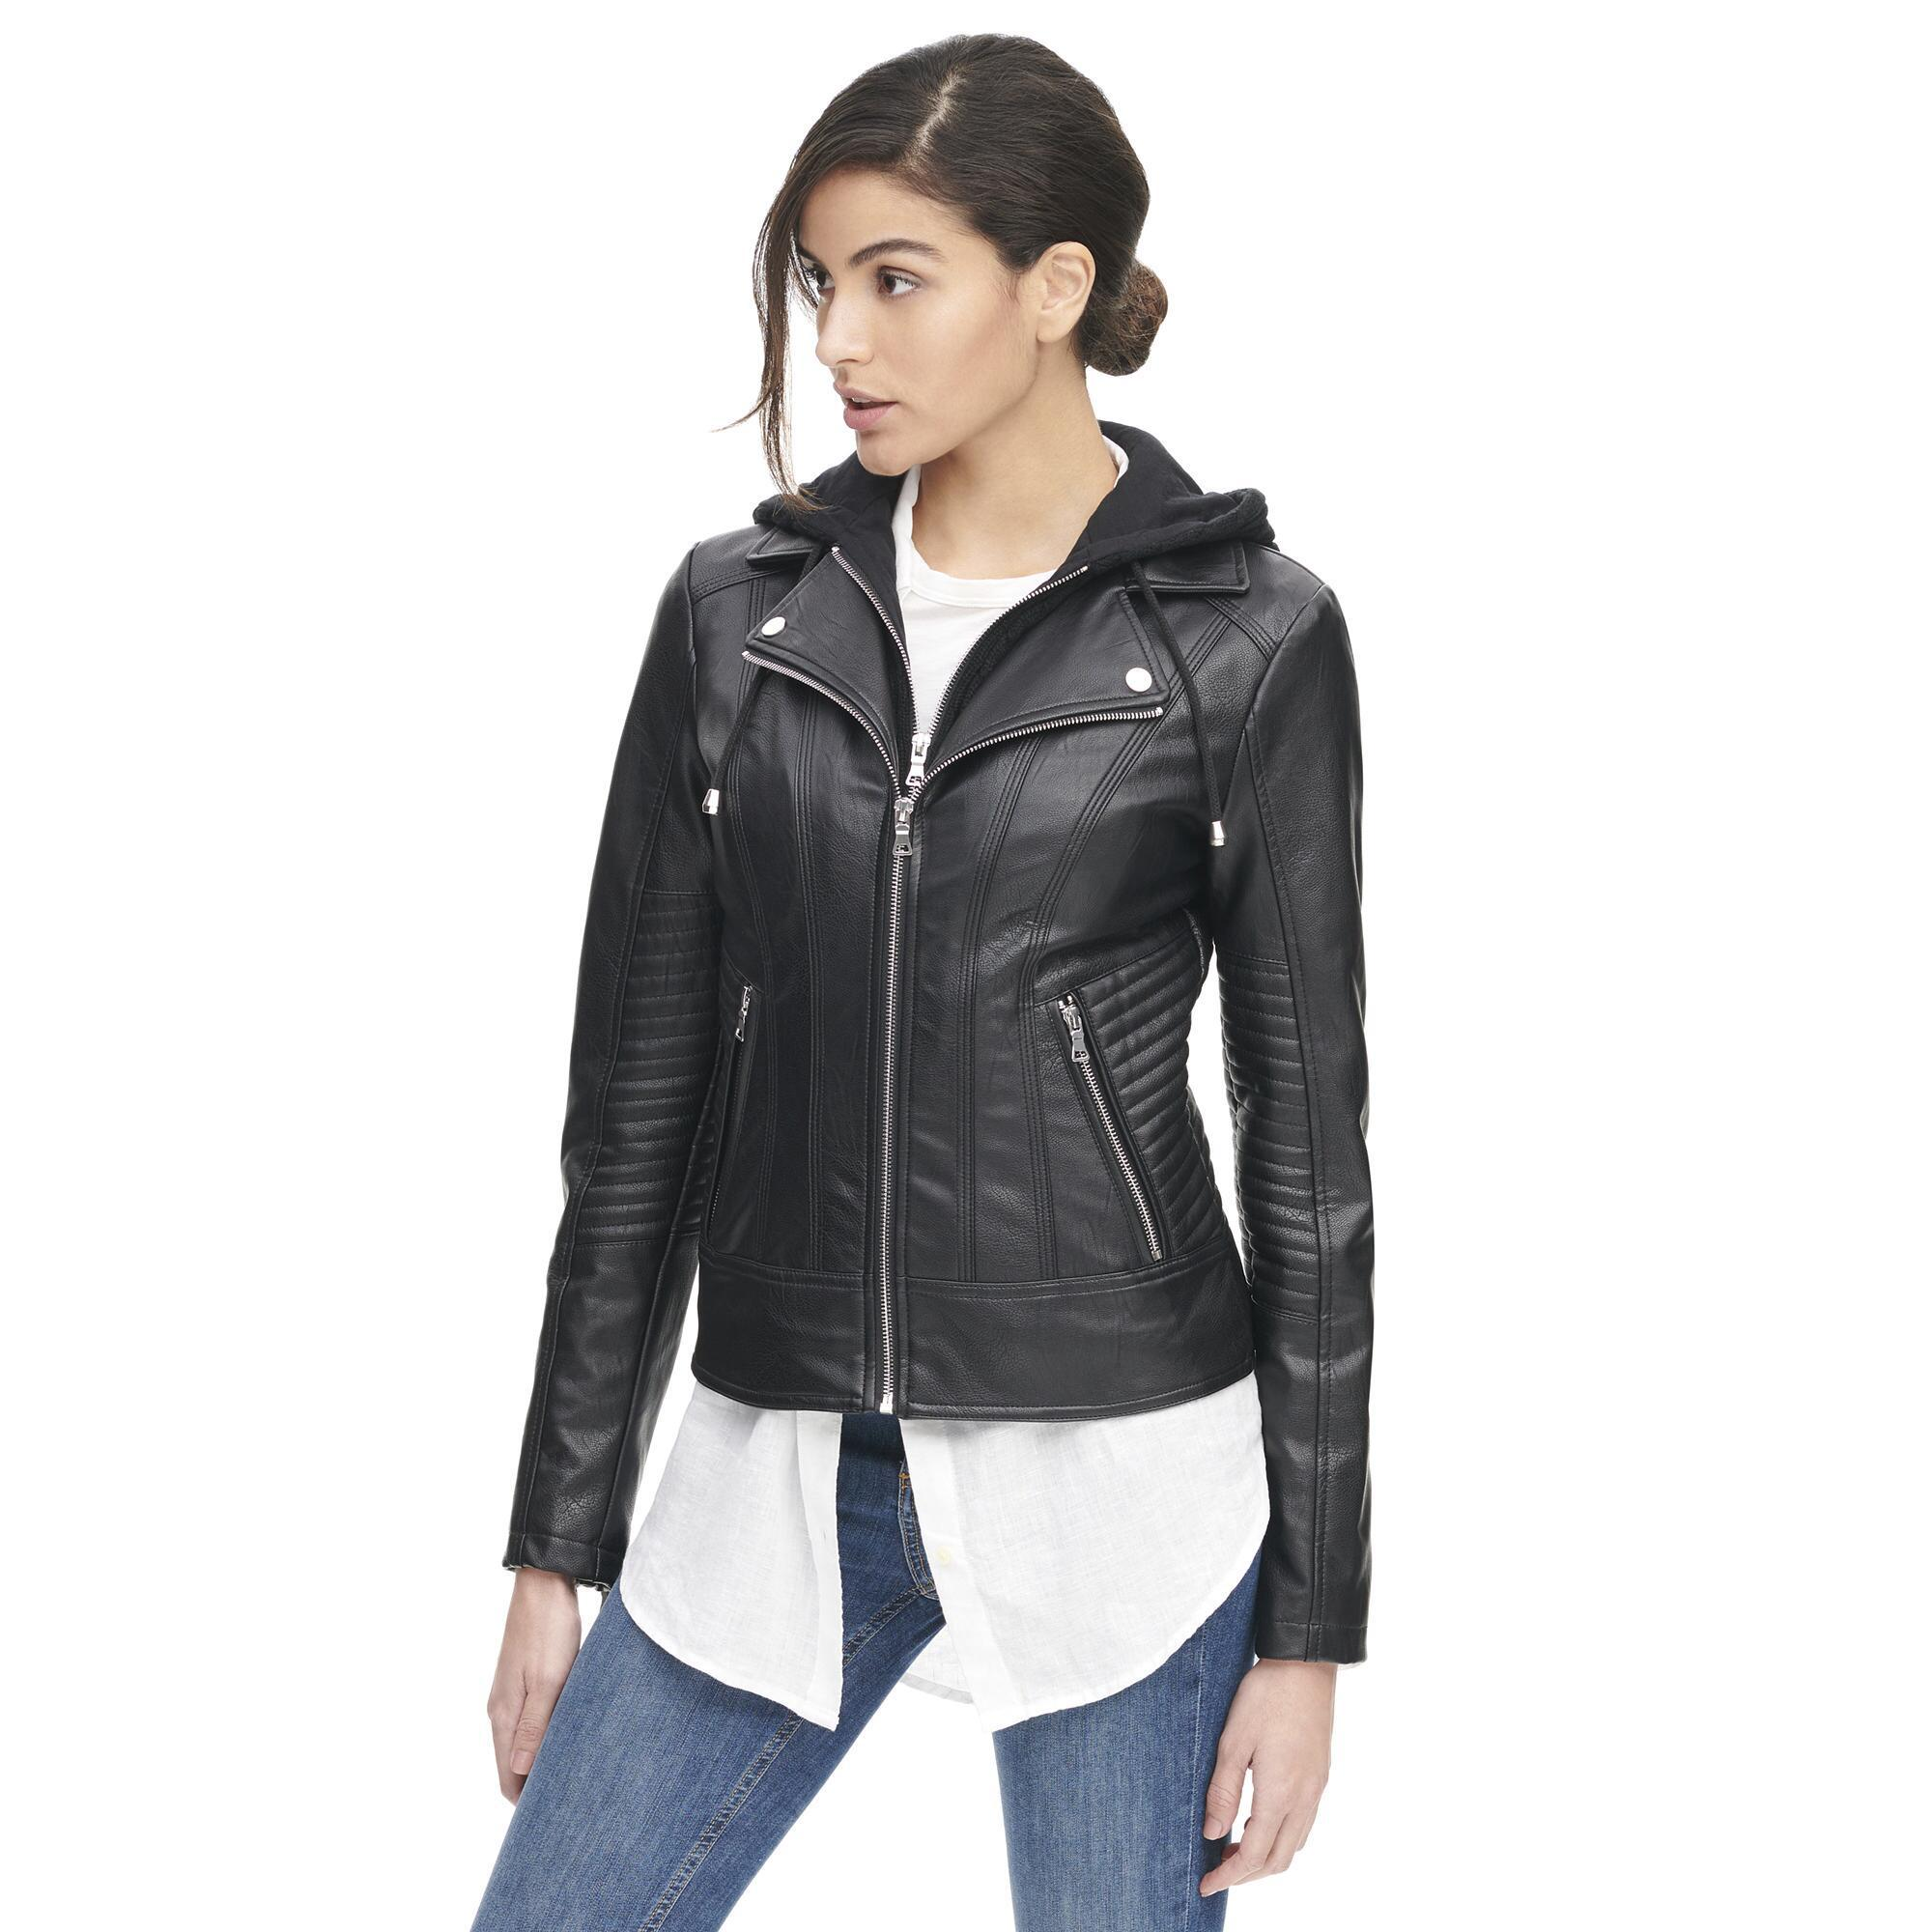 Communication on this topic: In Defense of the Faux-LeatherJacket, in-defense-of-the-faux-leatherjacket/